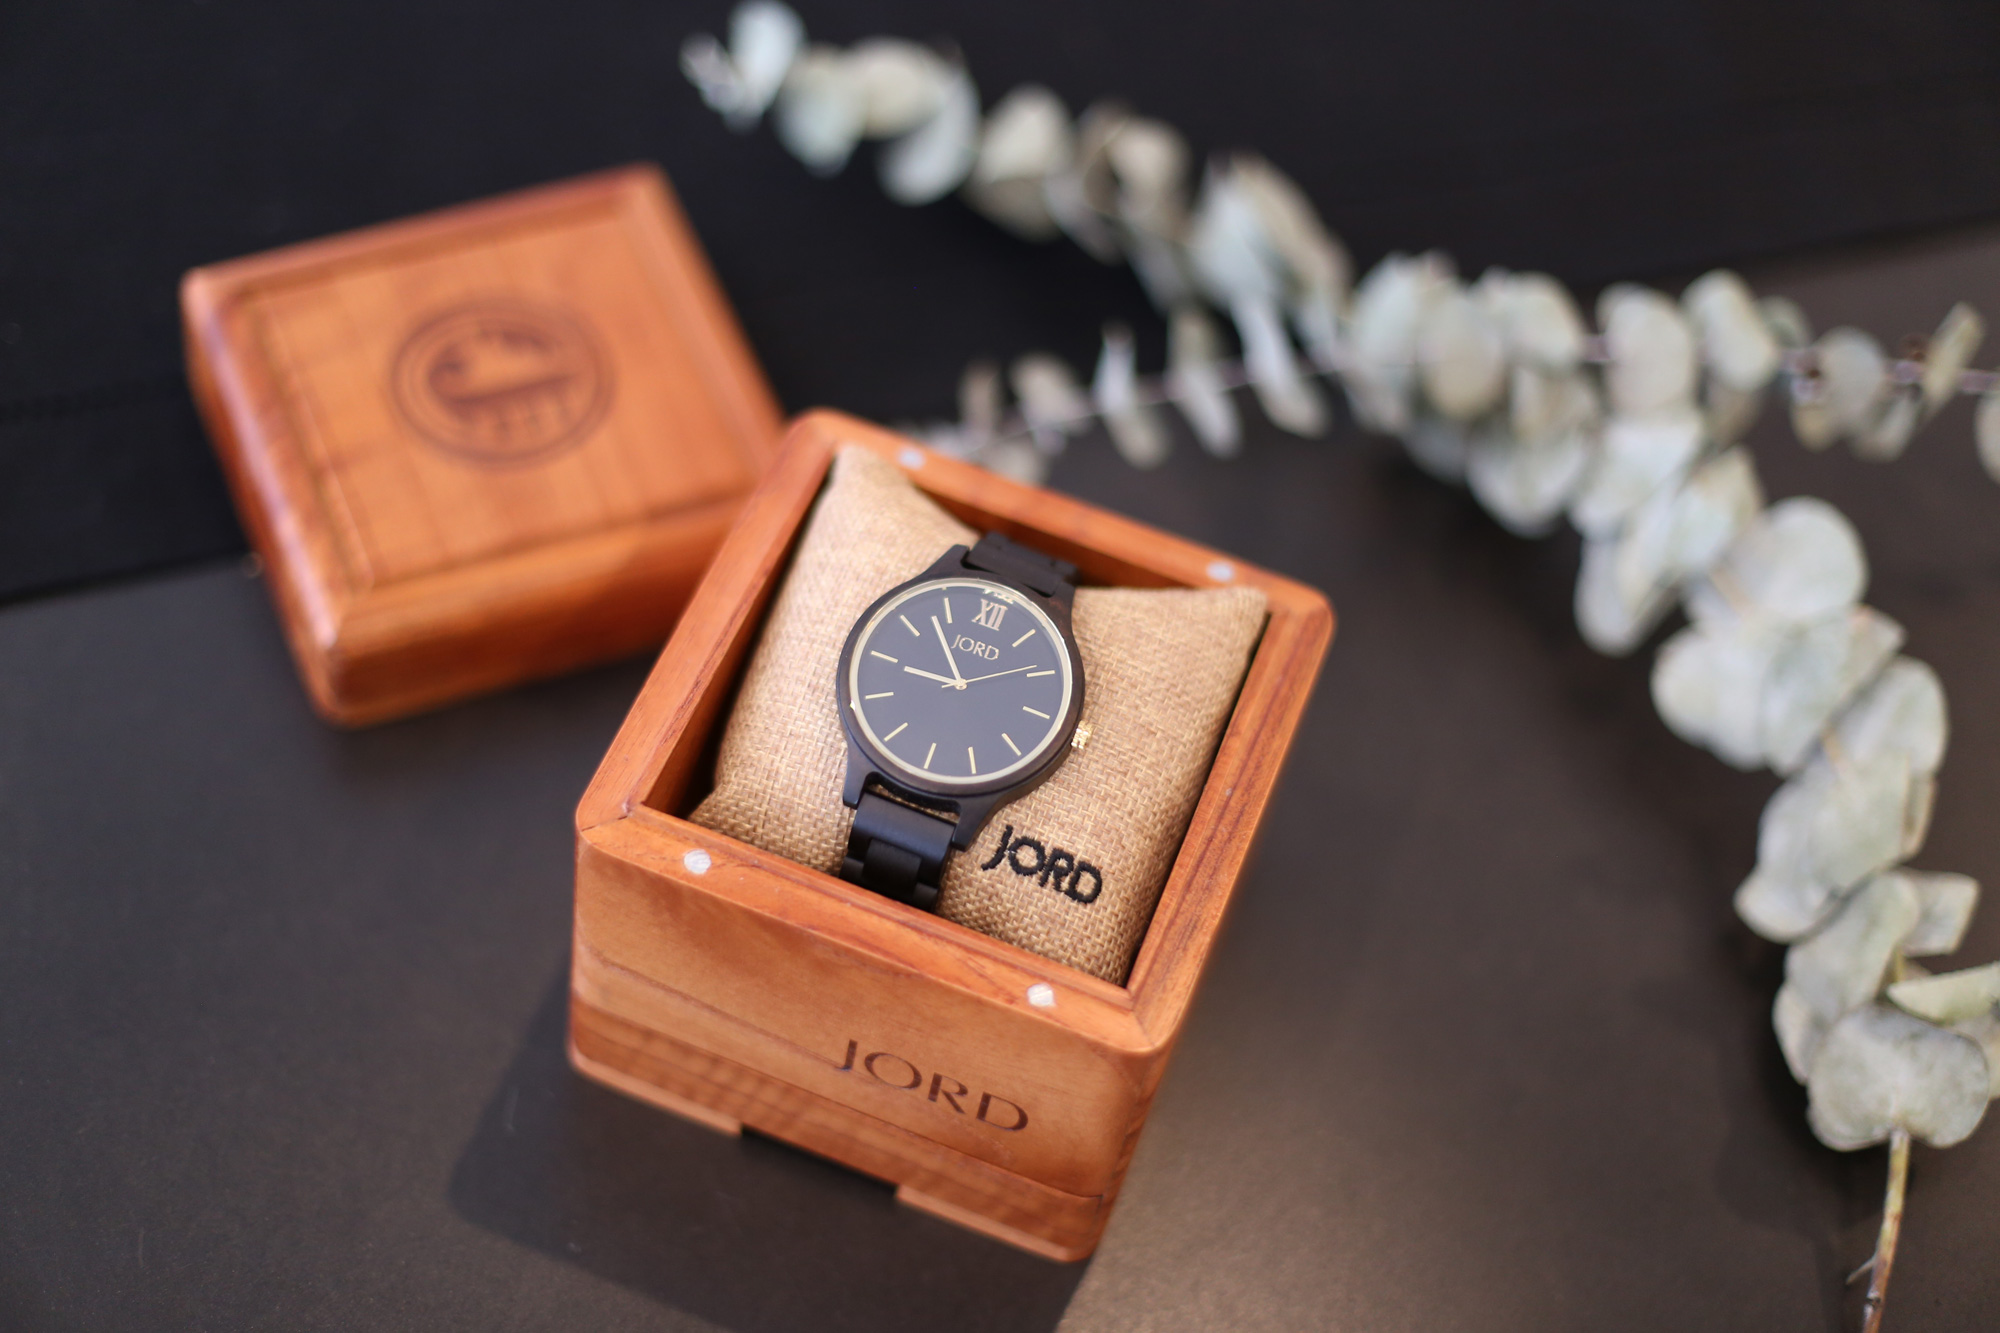 Jord watch giveaway and review.